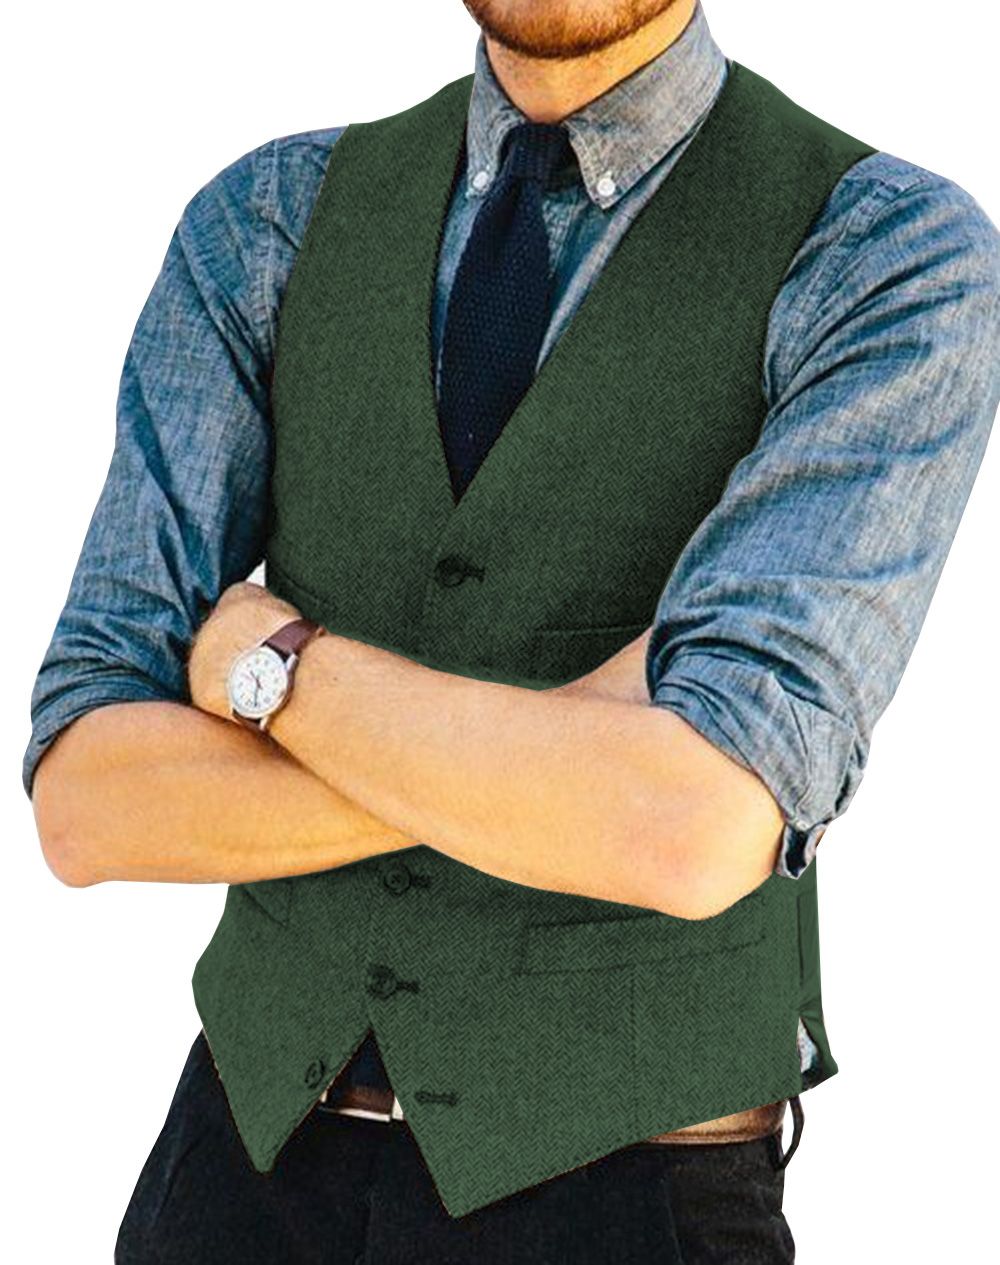 Suits & Blazers Men's Clothing Helpful Mens Suit Vest V Neck Wool Herringbone Tweed Casual Waistcoat Formal Business Vest Groomman For Green/black/brown/coffee